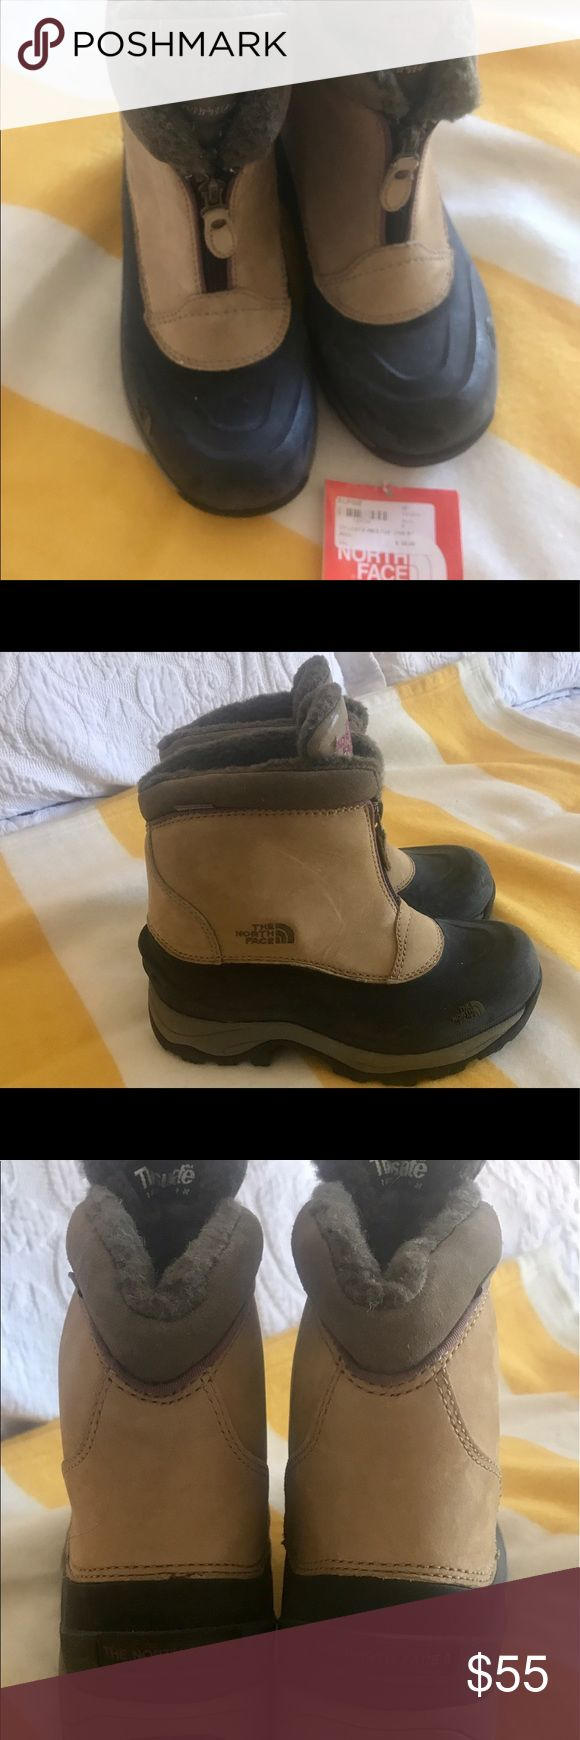 "North Face ""Chilkat"" waterproof, insulated boot. Never worn, with original tag. The North Face ""Chilkat"" waterproof, with 'Thinsulate' Boot. Zipper closure. Great for walking in cold weather or ""apres ski""! Tan with black bottoms. The North Face Shoes Winter & Rain Boots"